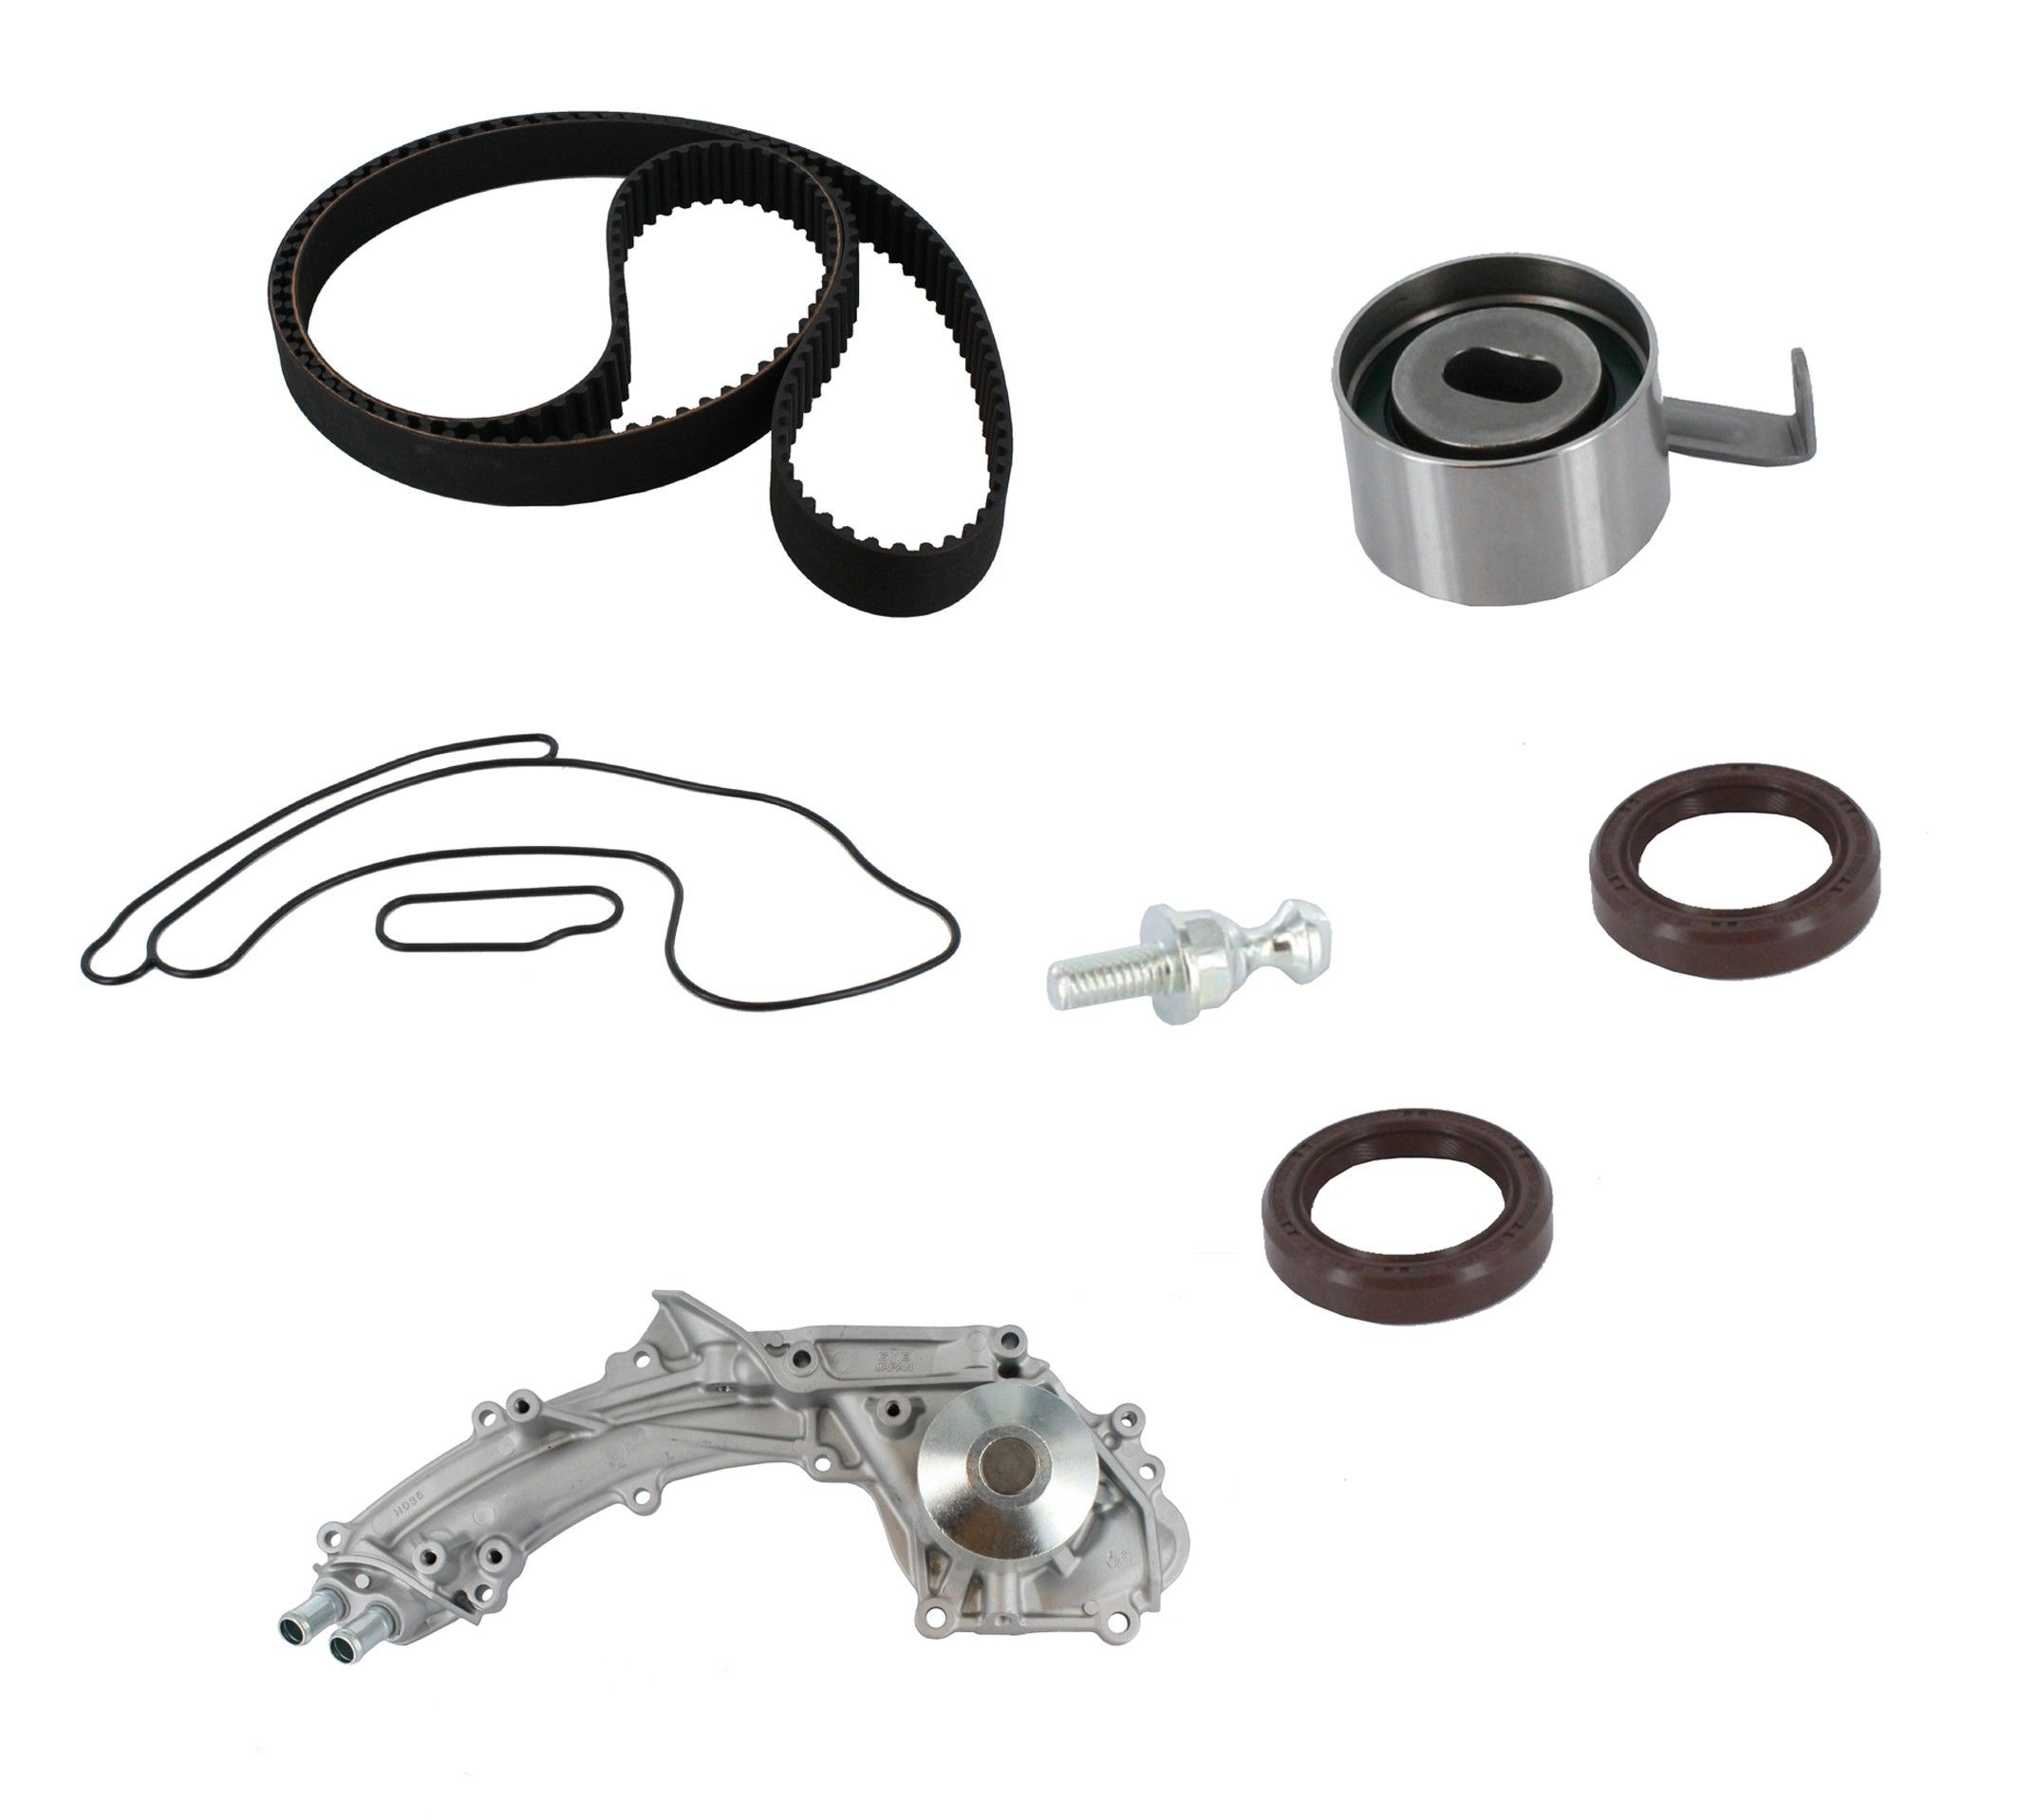 1995 Acura Legend Engine Timing Belt Kit with Water Pump 6 Cyl 3.2L (CRP  PP193LK1) Pro Series Plus ContiTech Timing Kit w/2-Outlet Tubes  Interference Eng. .